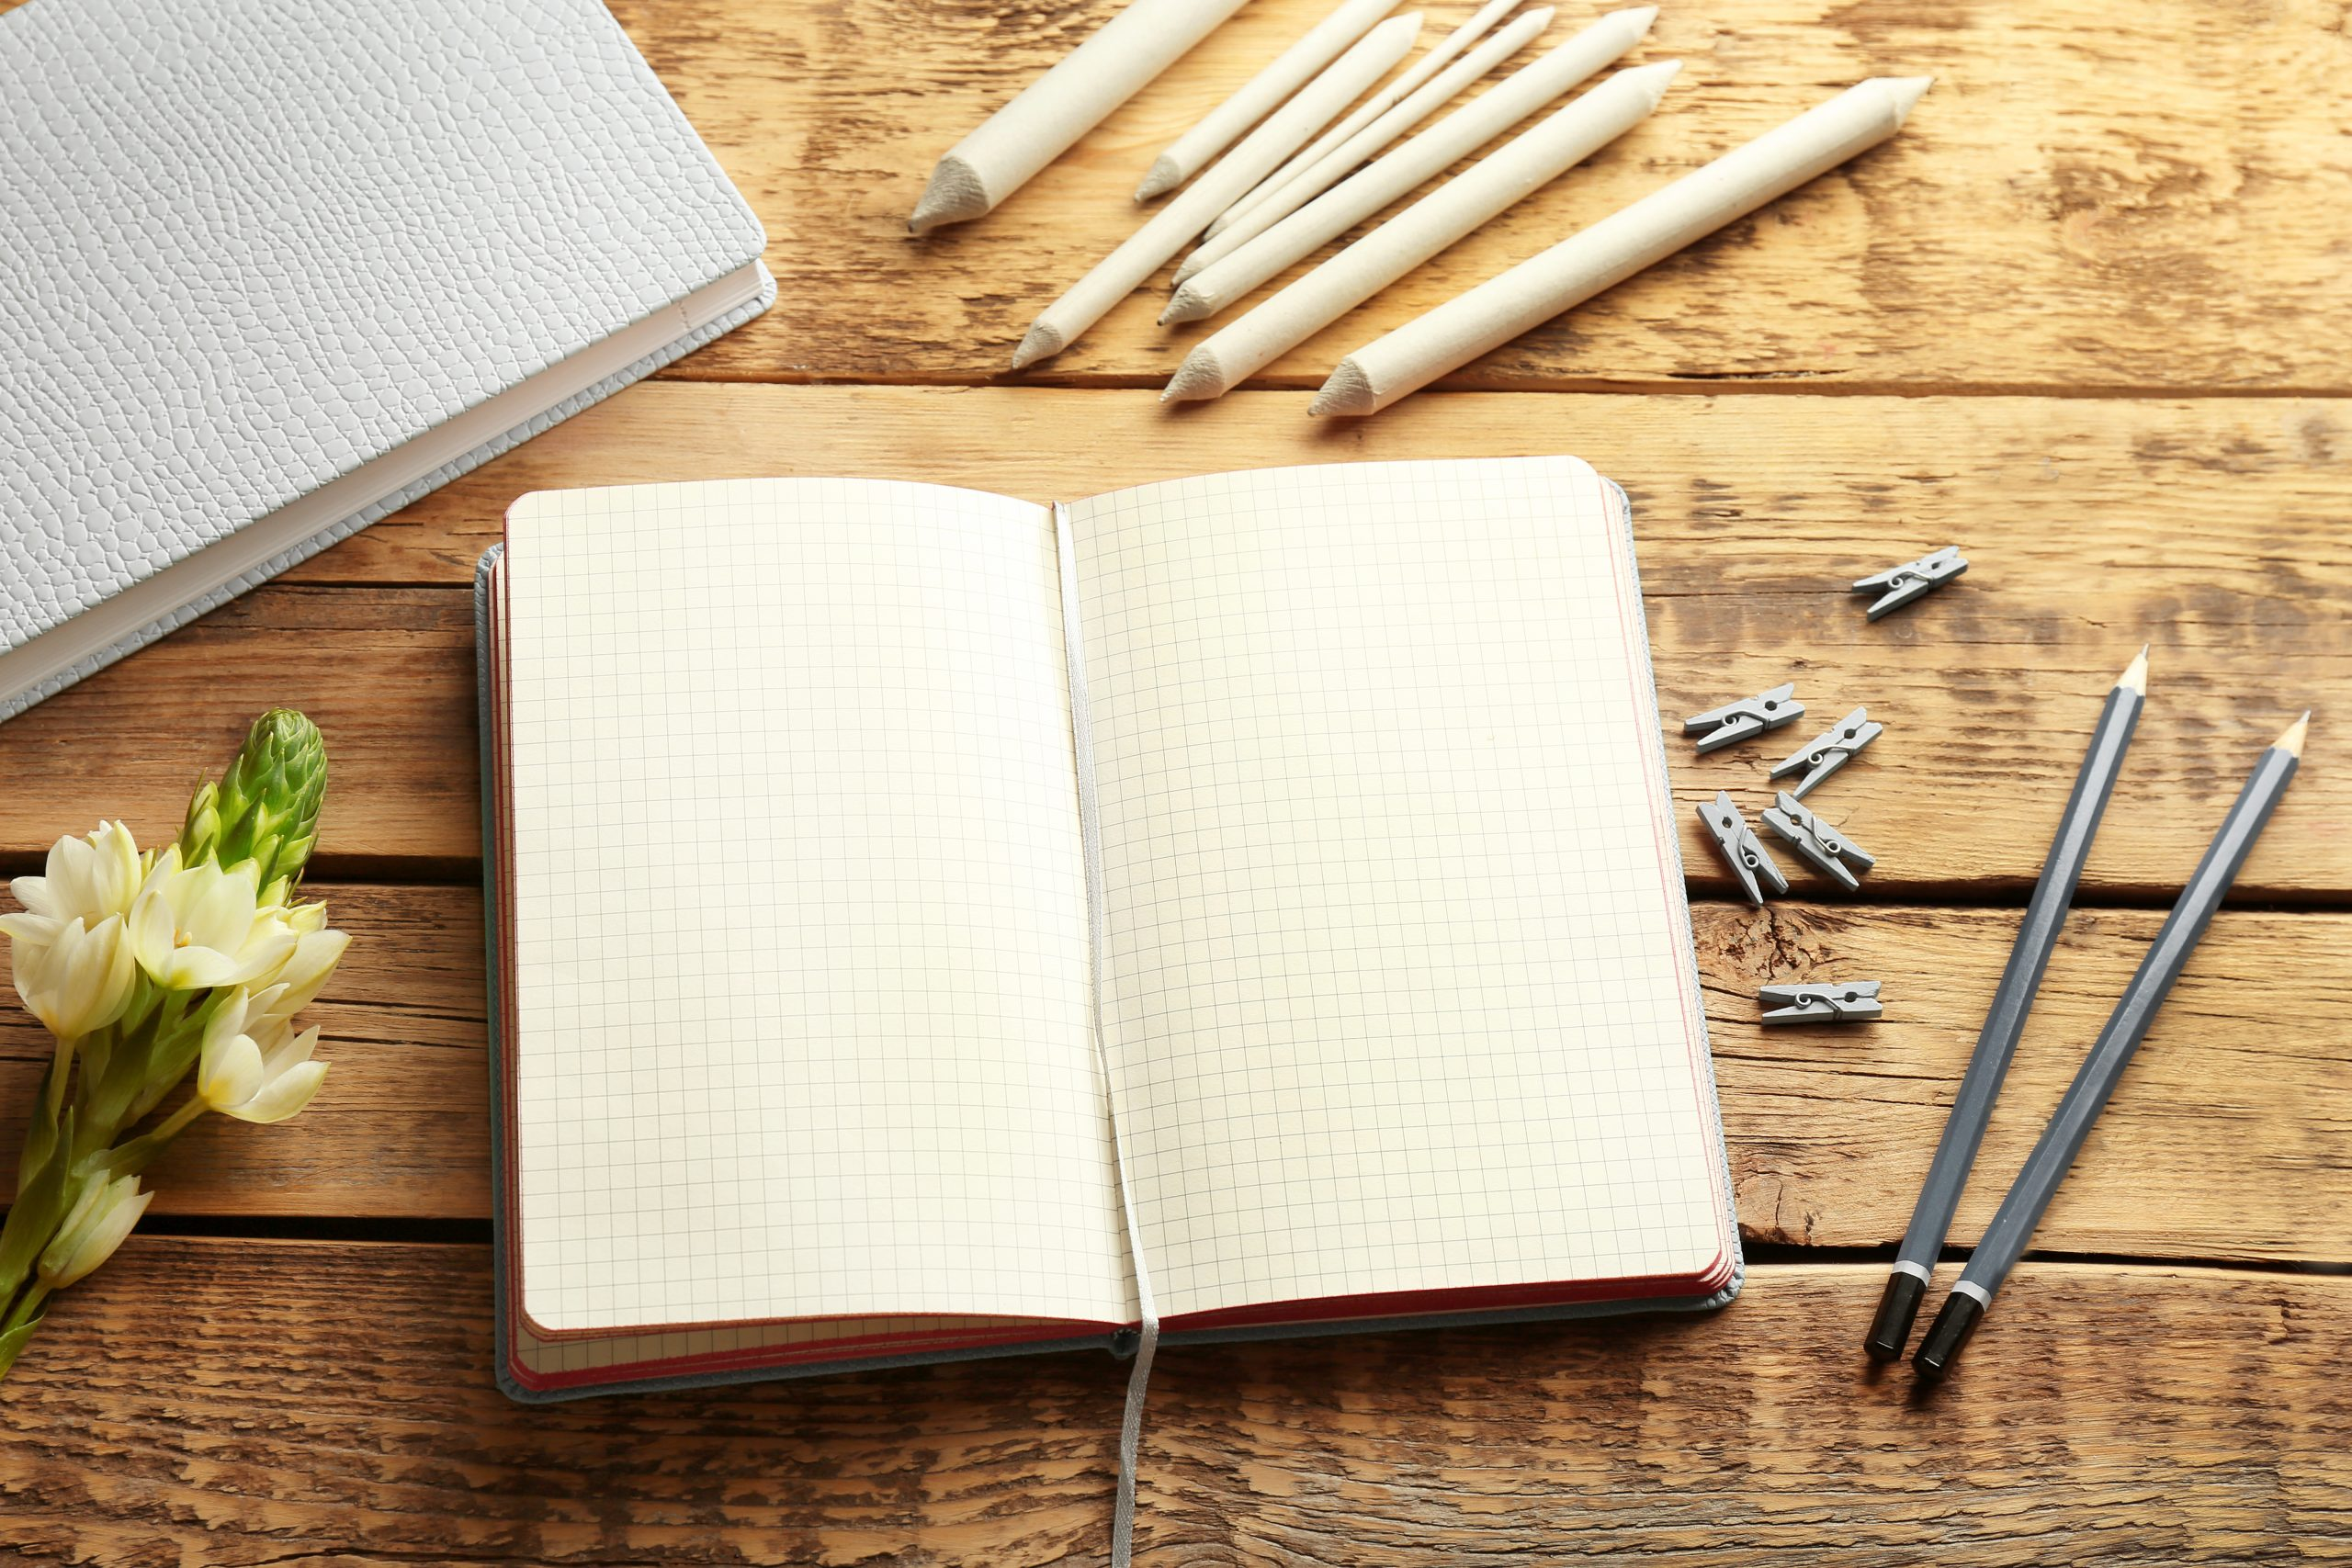 How to Design a Sketchbook Cover